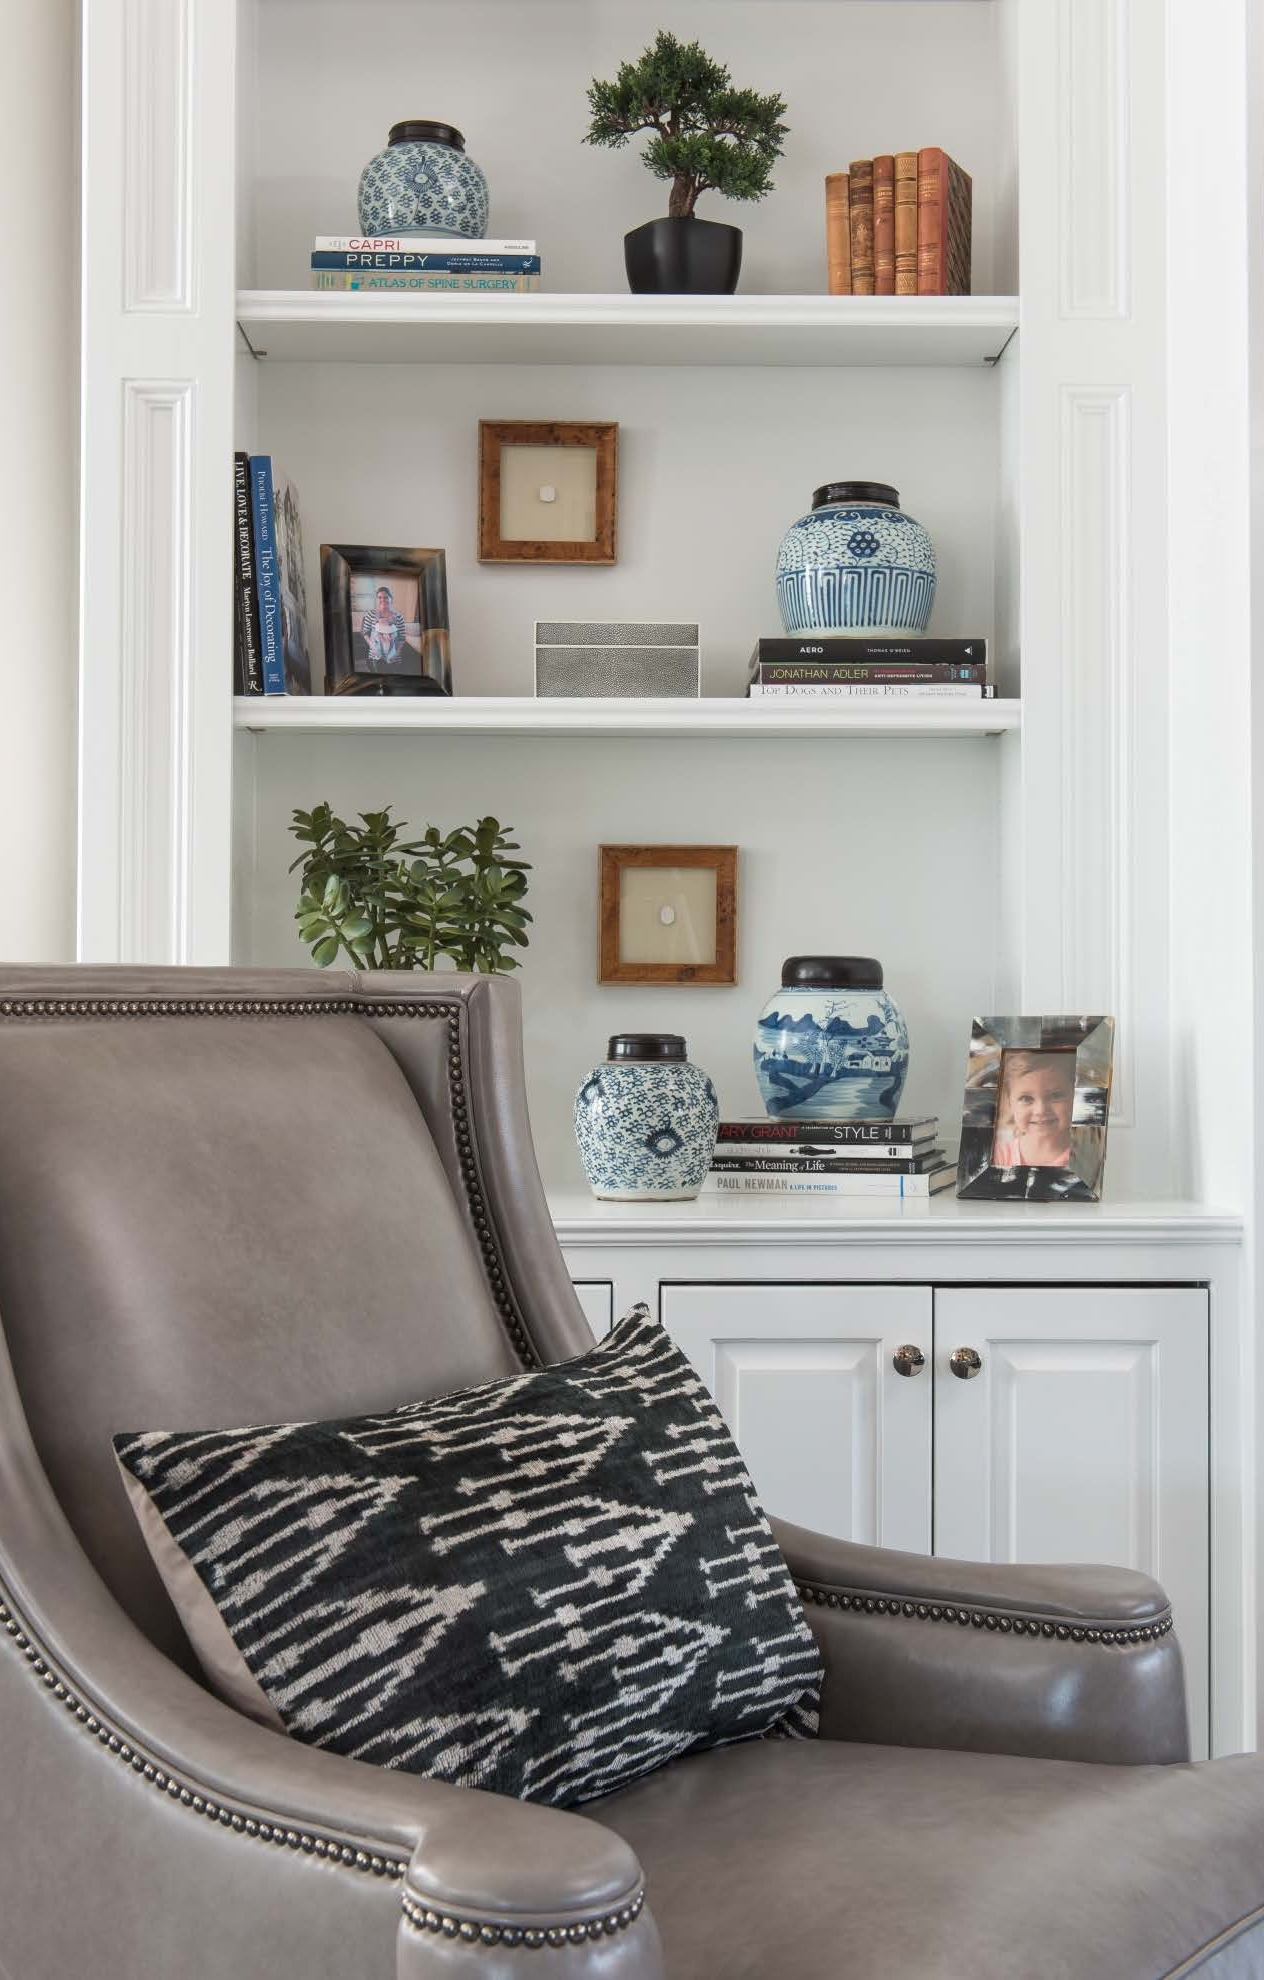 Blue and white china adds refinement to this transitional home in Plano.